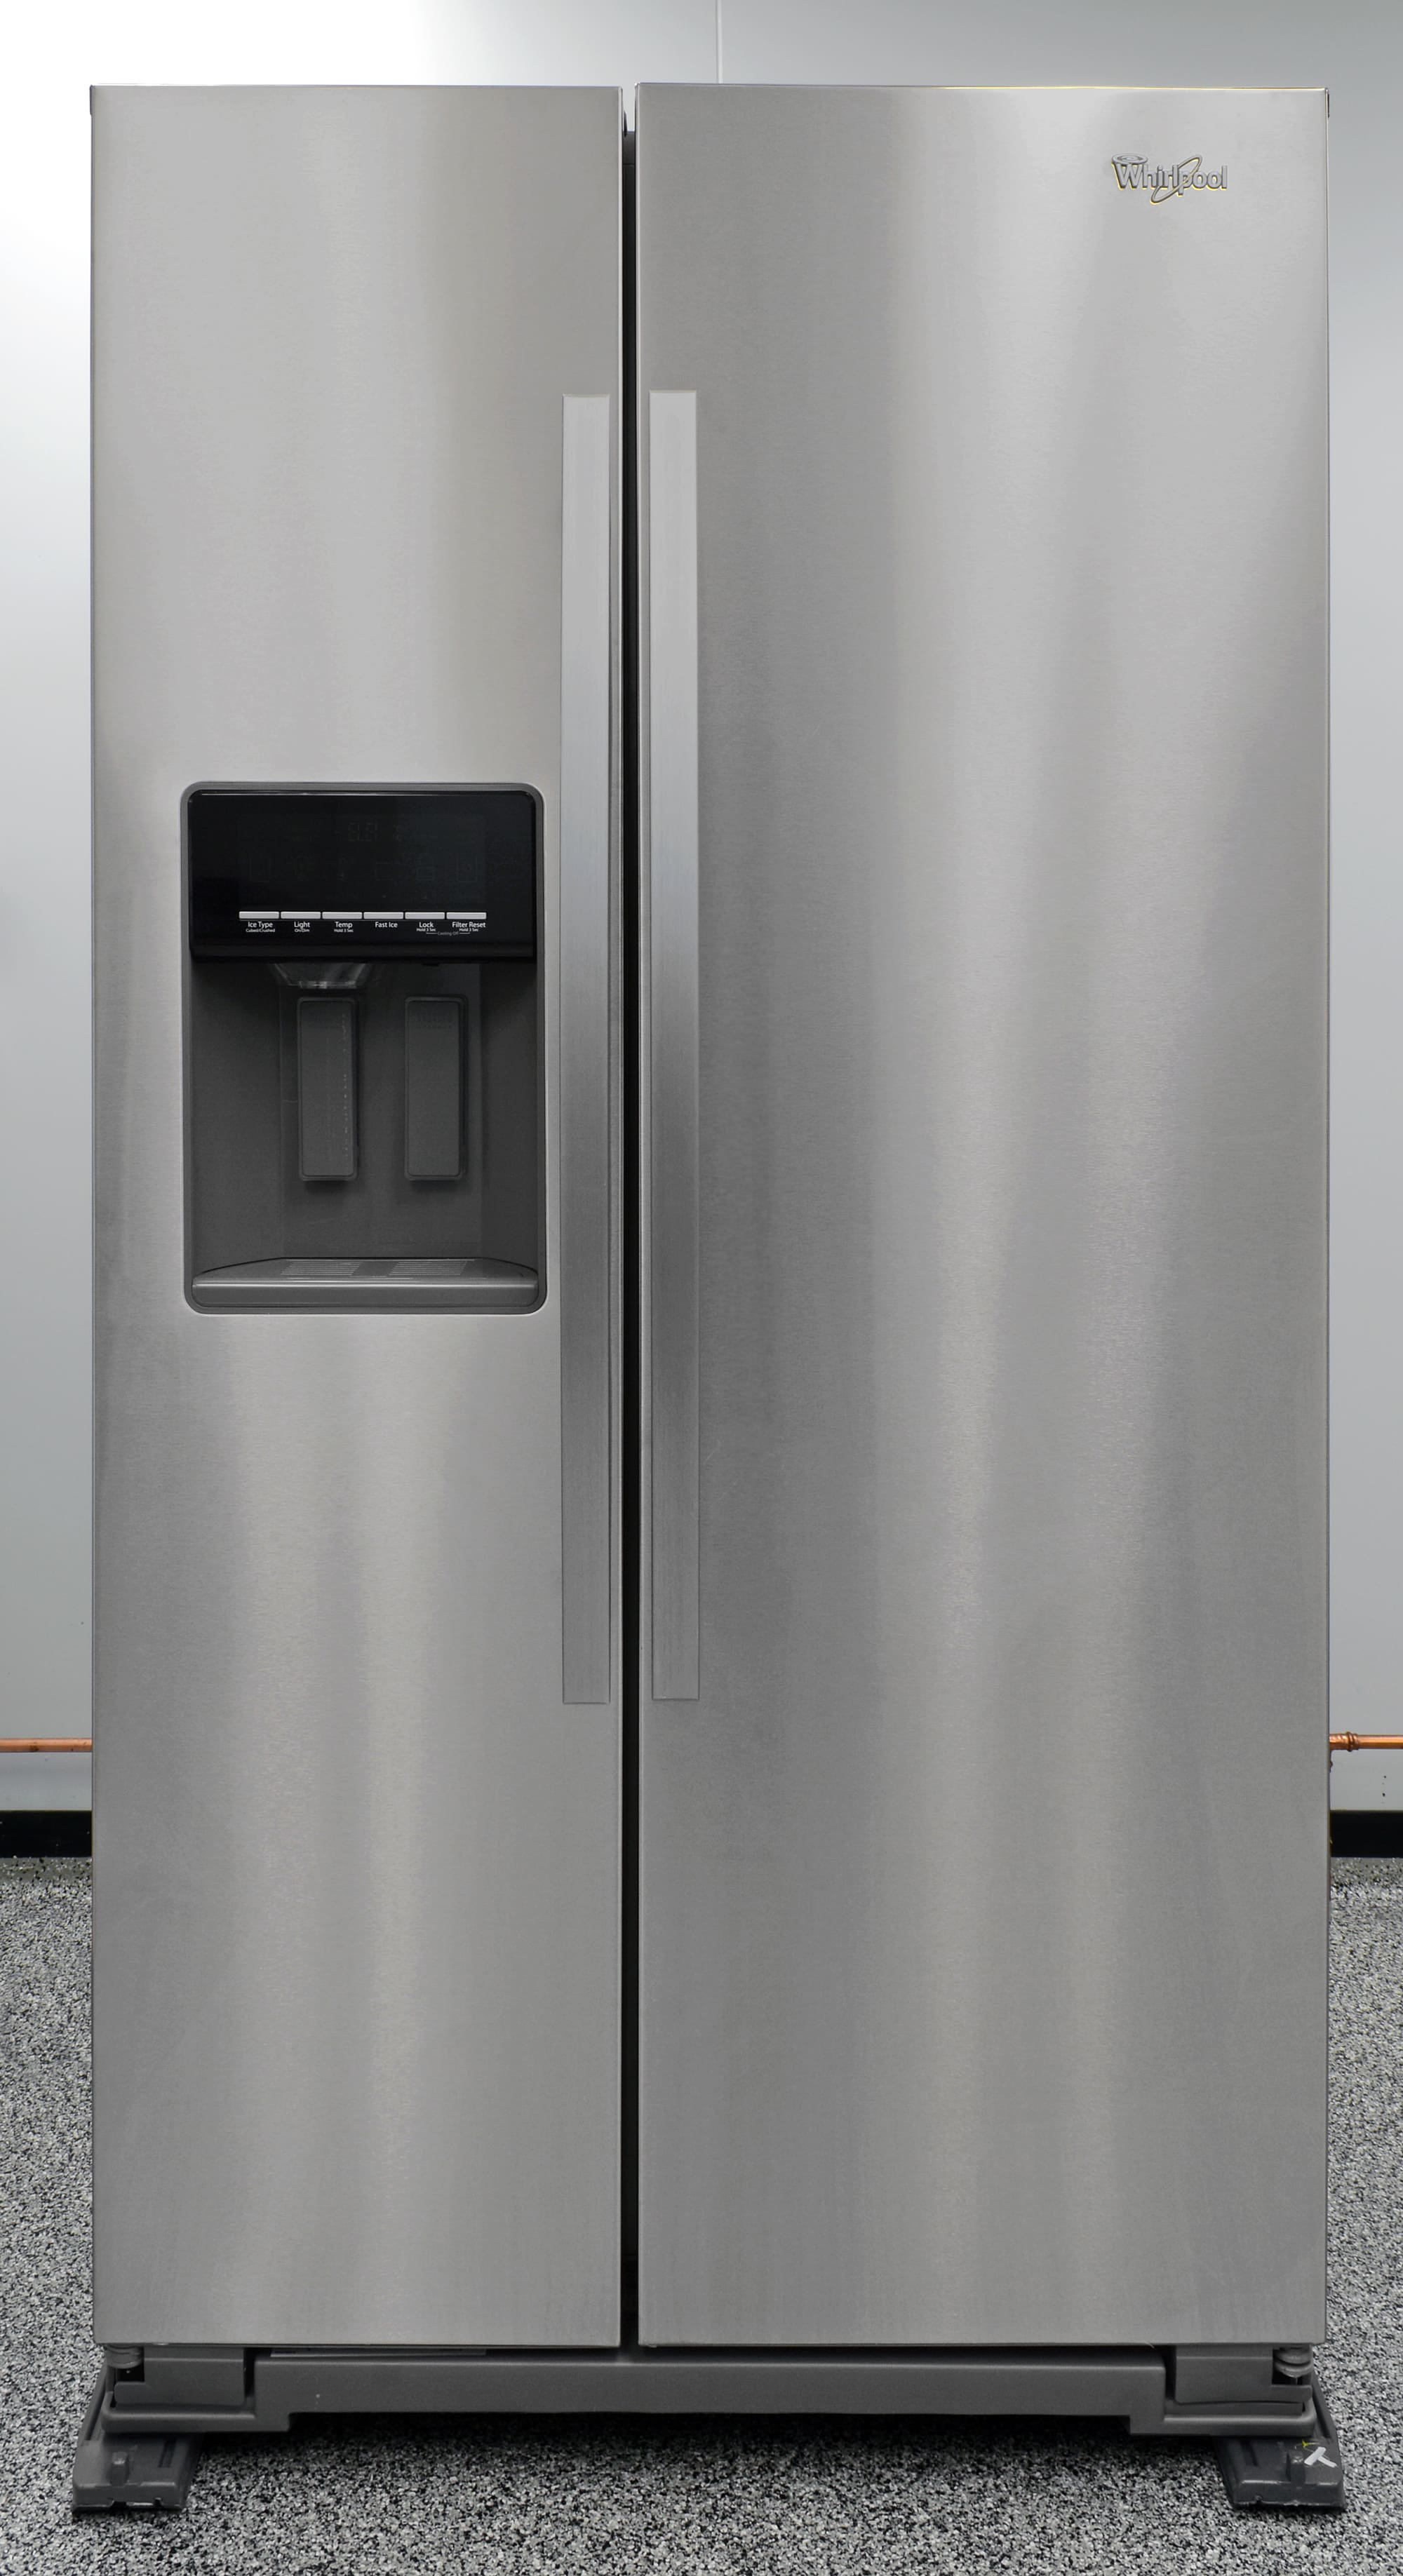 The Whirlpool WRS571CIDM side-by-side looks stylish enough, but lacks substance.